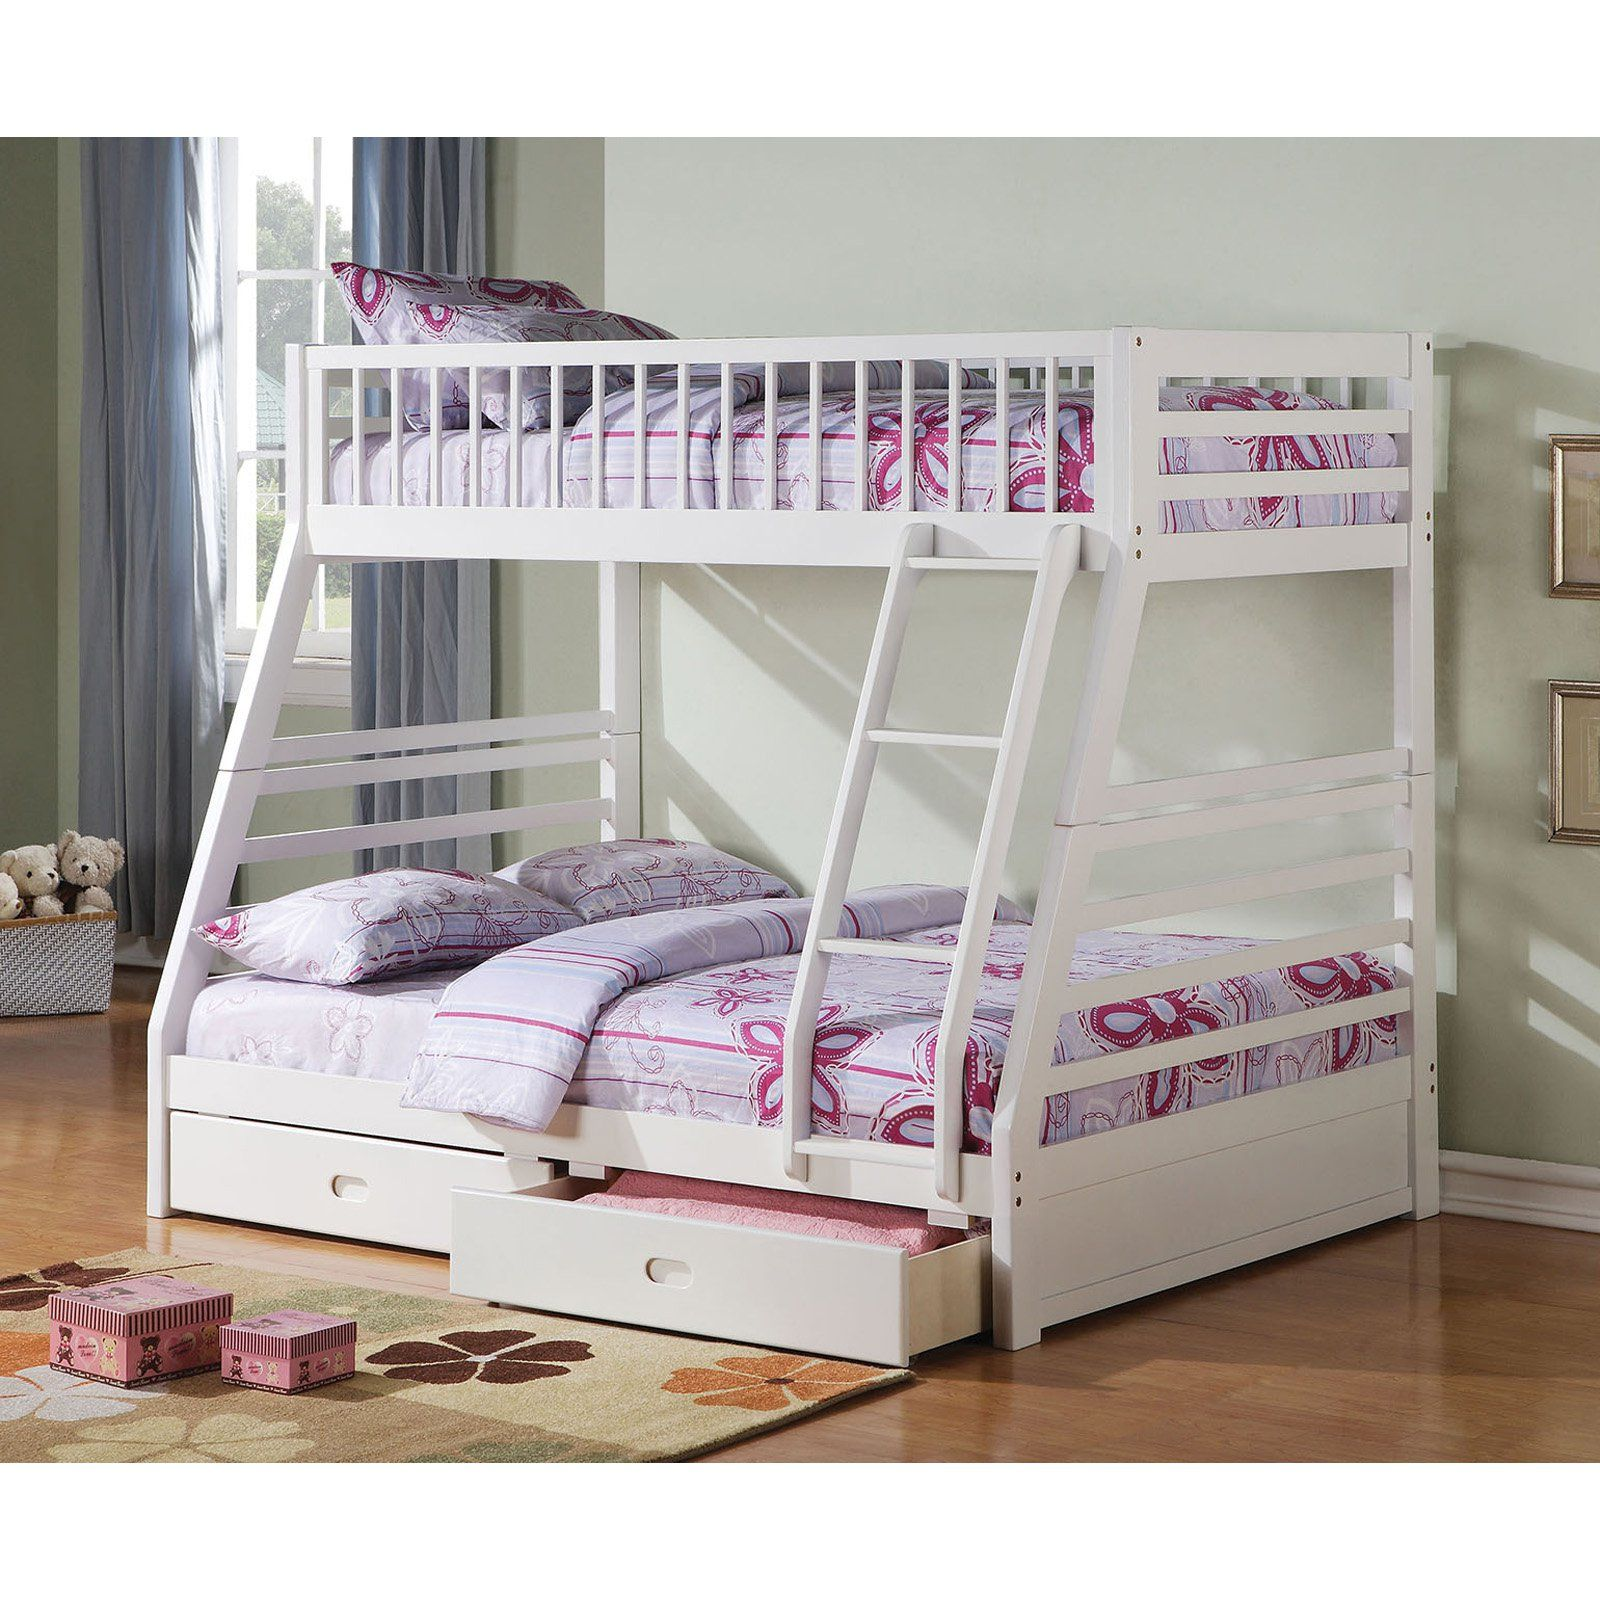 Acme Furniture Jason Twin Over Full Bunk Bed With Drawers White Bunk Beds Bunk Beds With Storage Bunk Bed Sets